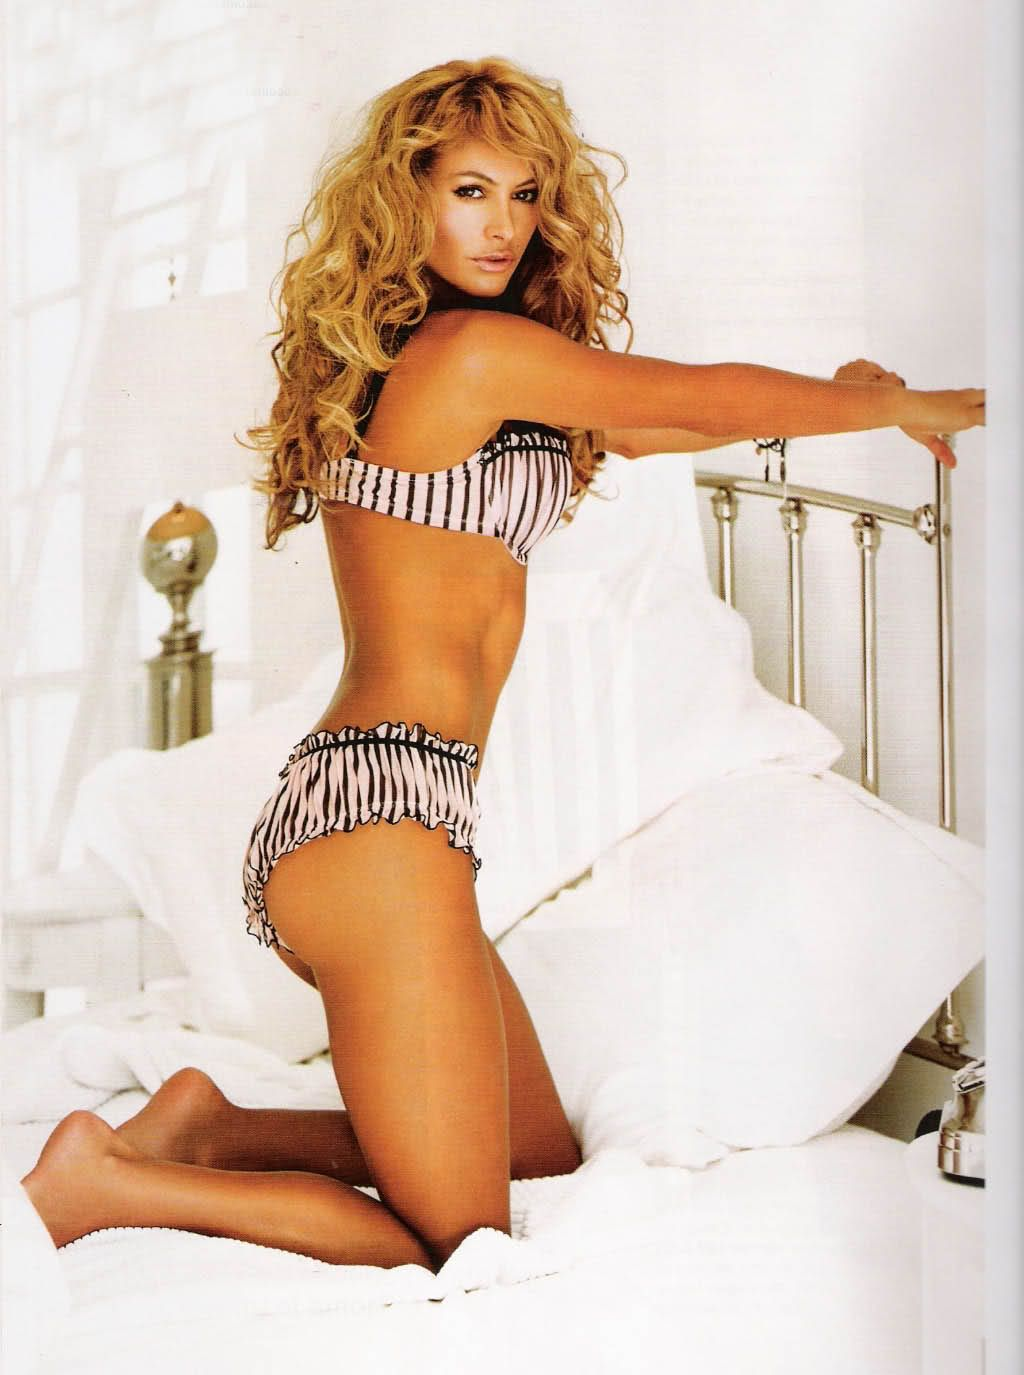 Paulina Rubio on the bed